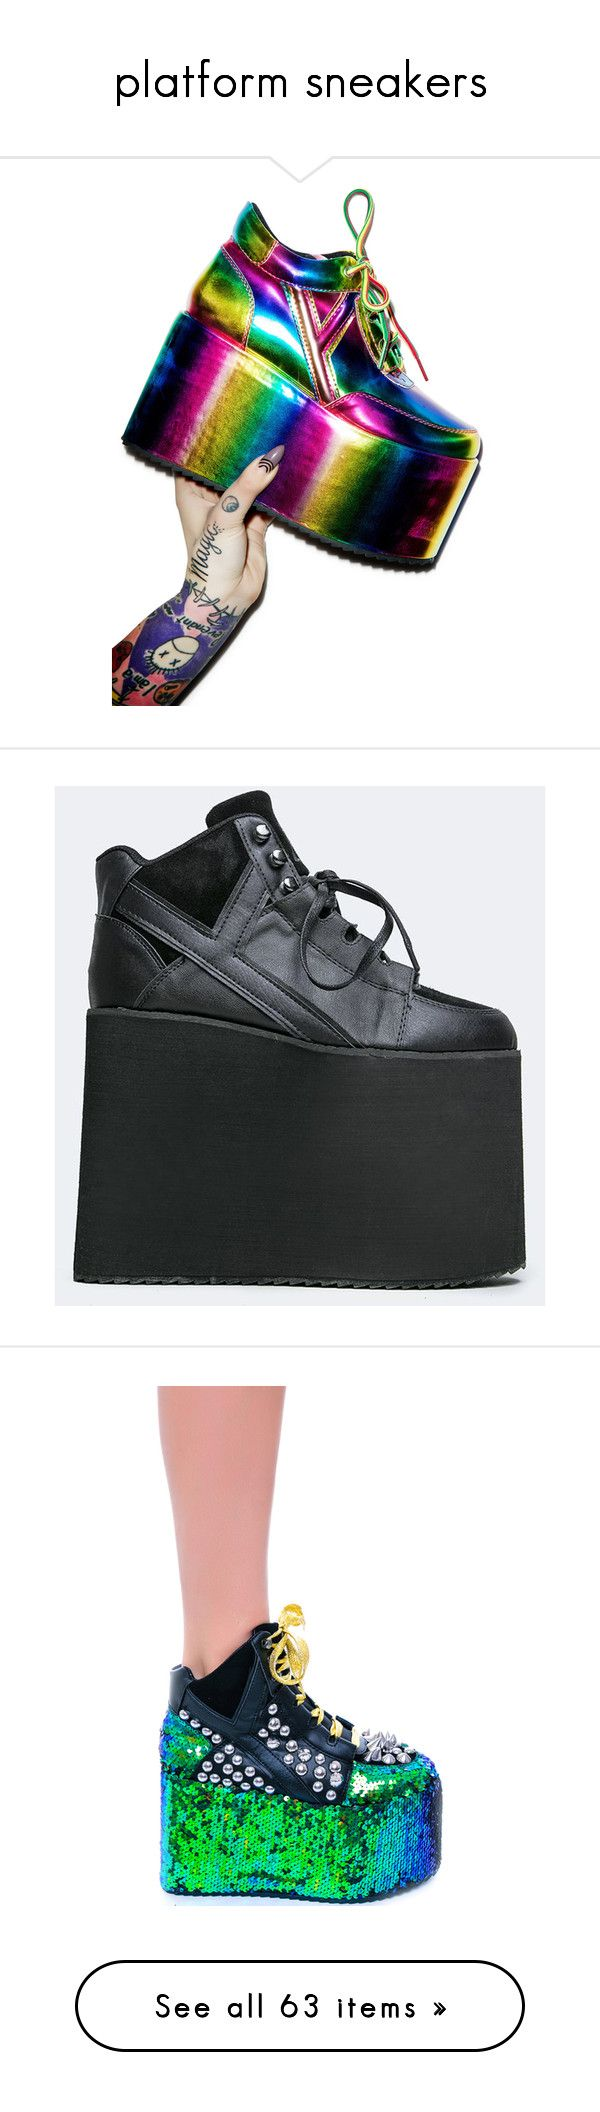 """""""platform sneakers"""" by redranger-kei ❤ liked on Polyvore featuring platformsneakers, shoes, sneakers, platform, waist trainer, rainbow platform sneakers, women shoes, polish shoes, shiny shoes and black"""